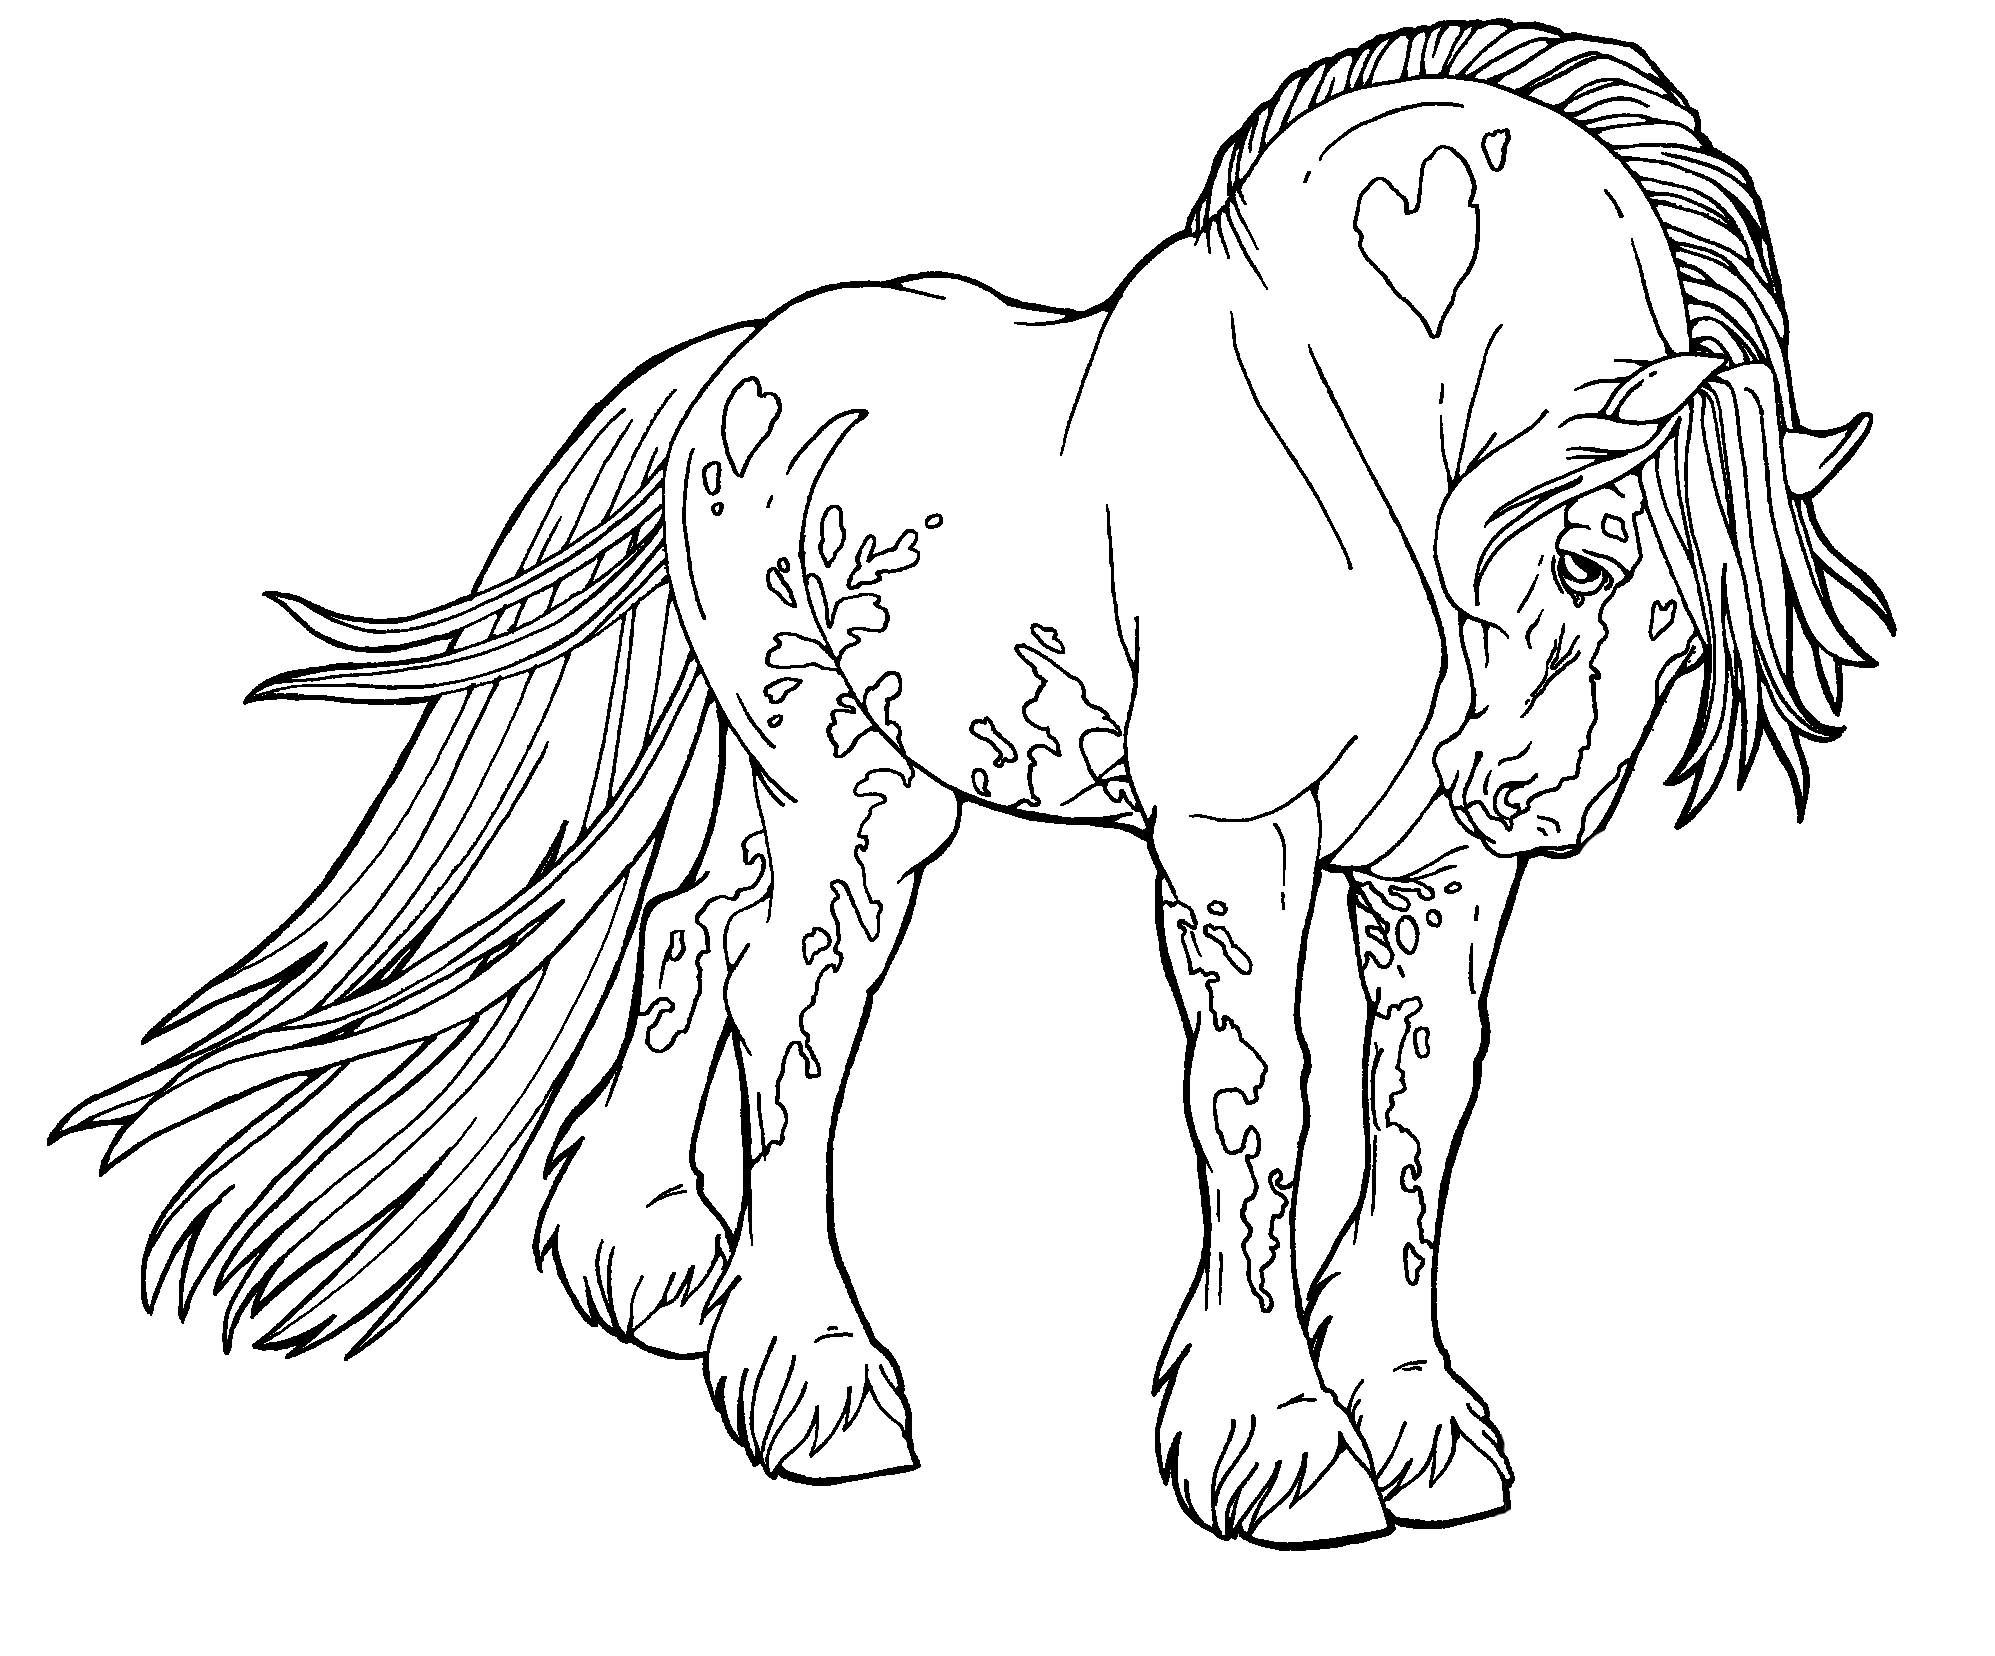 horse coloring pages free free printable horse coloring pages for kids funsoke horse coloring pages free